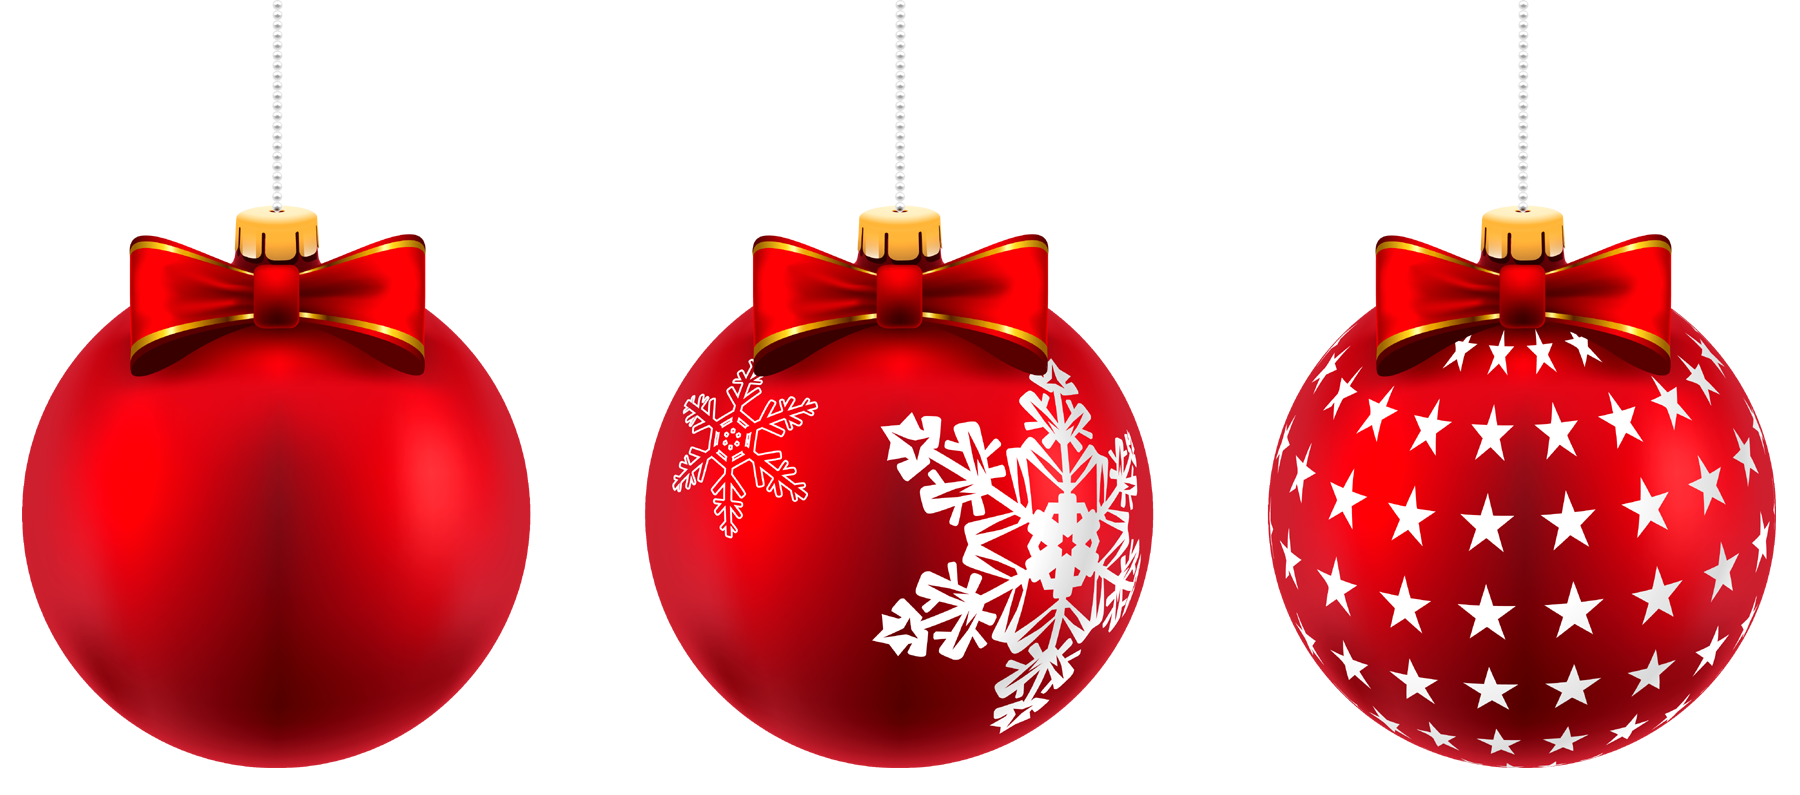 Christmas ball png. With transparant red balls